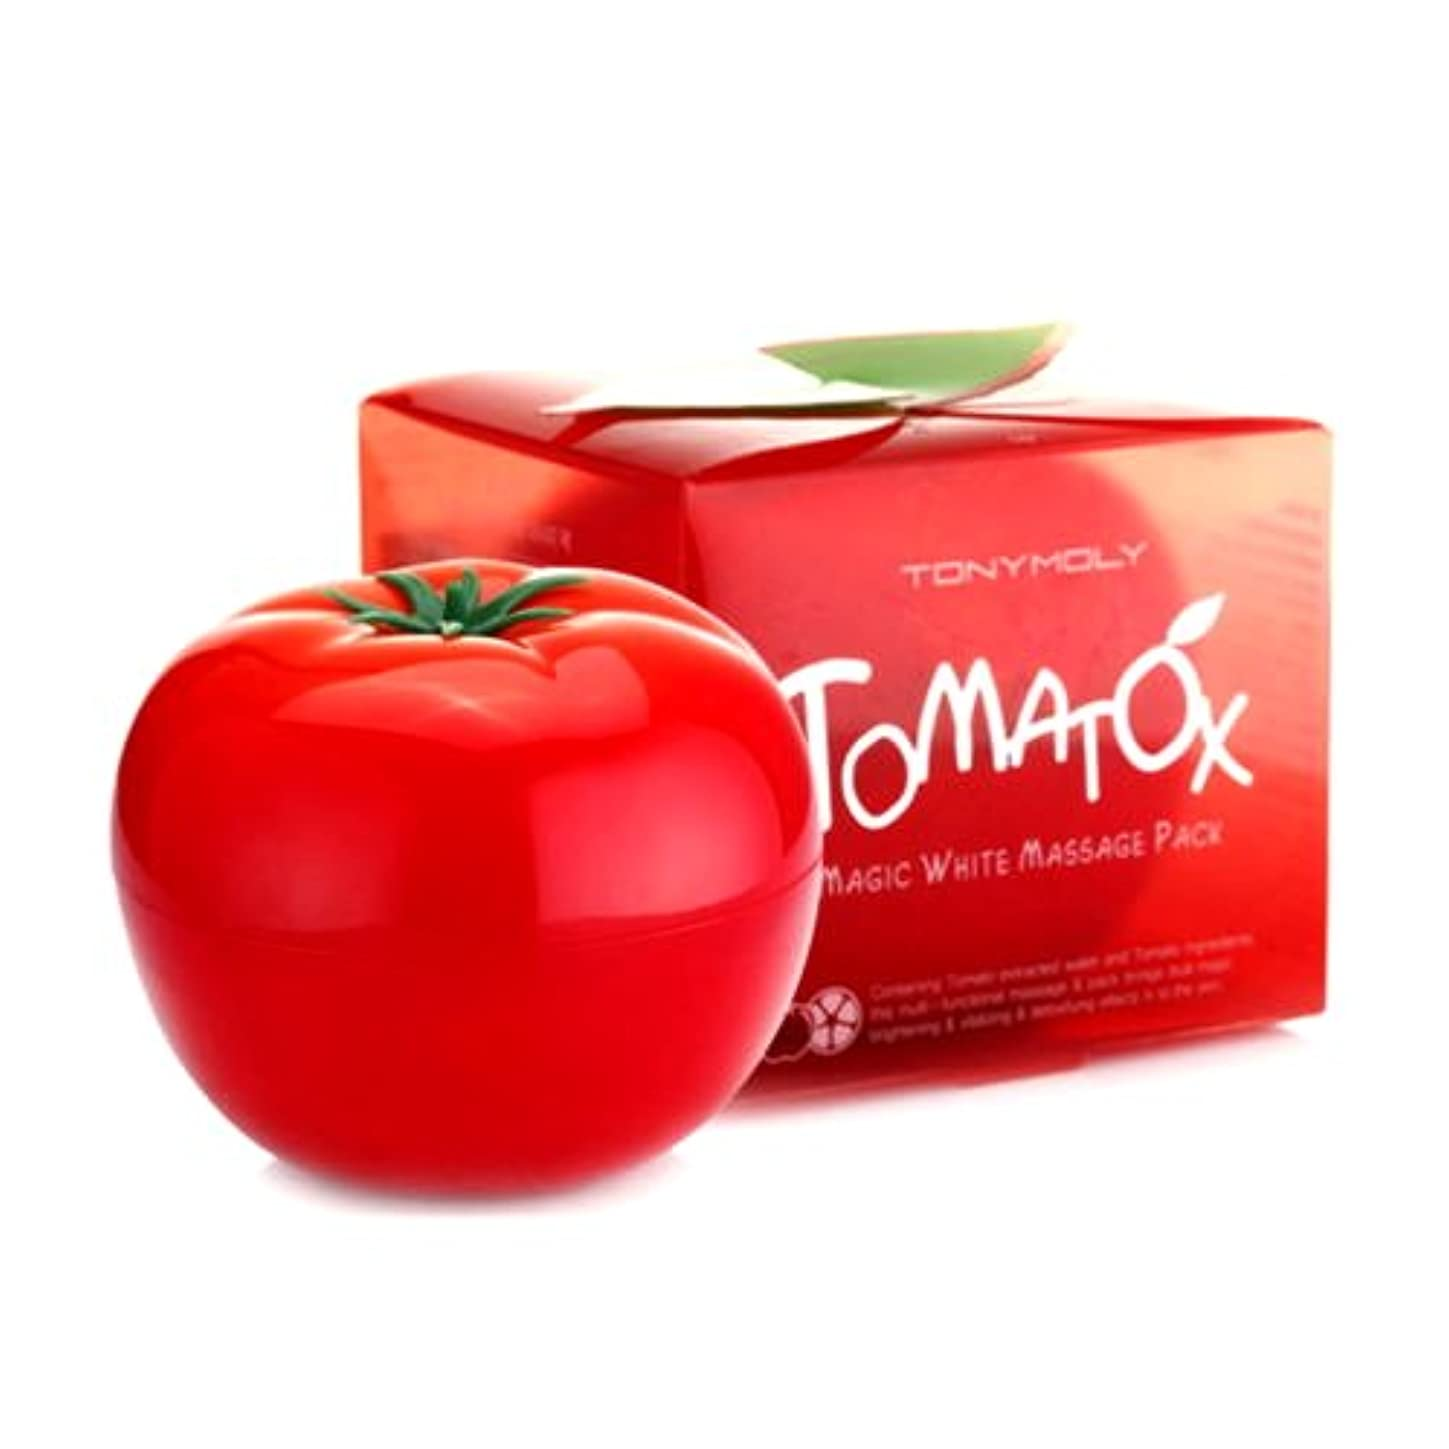 報酬モンク指紋(6 Pack) TONYMOLY Tomatox Magic Massage Pack (並行輸入品)